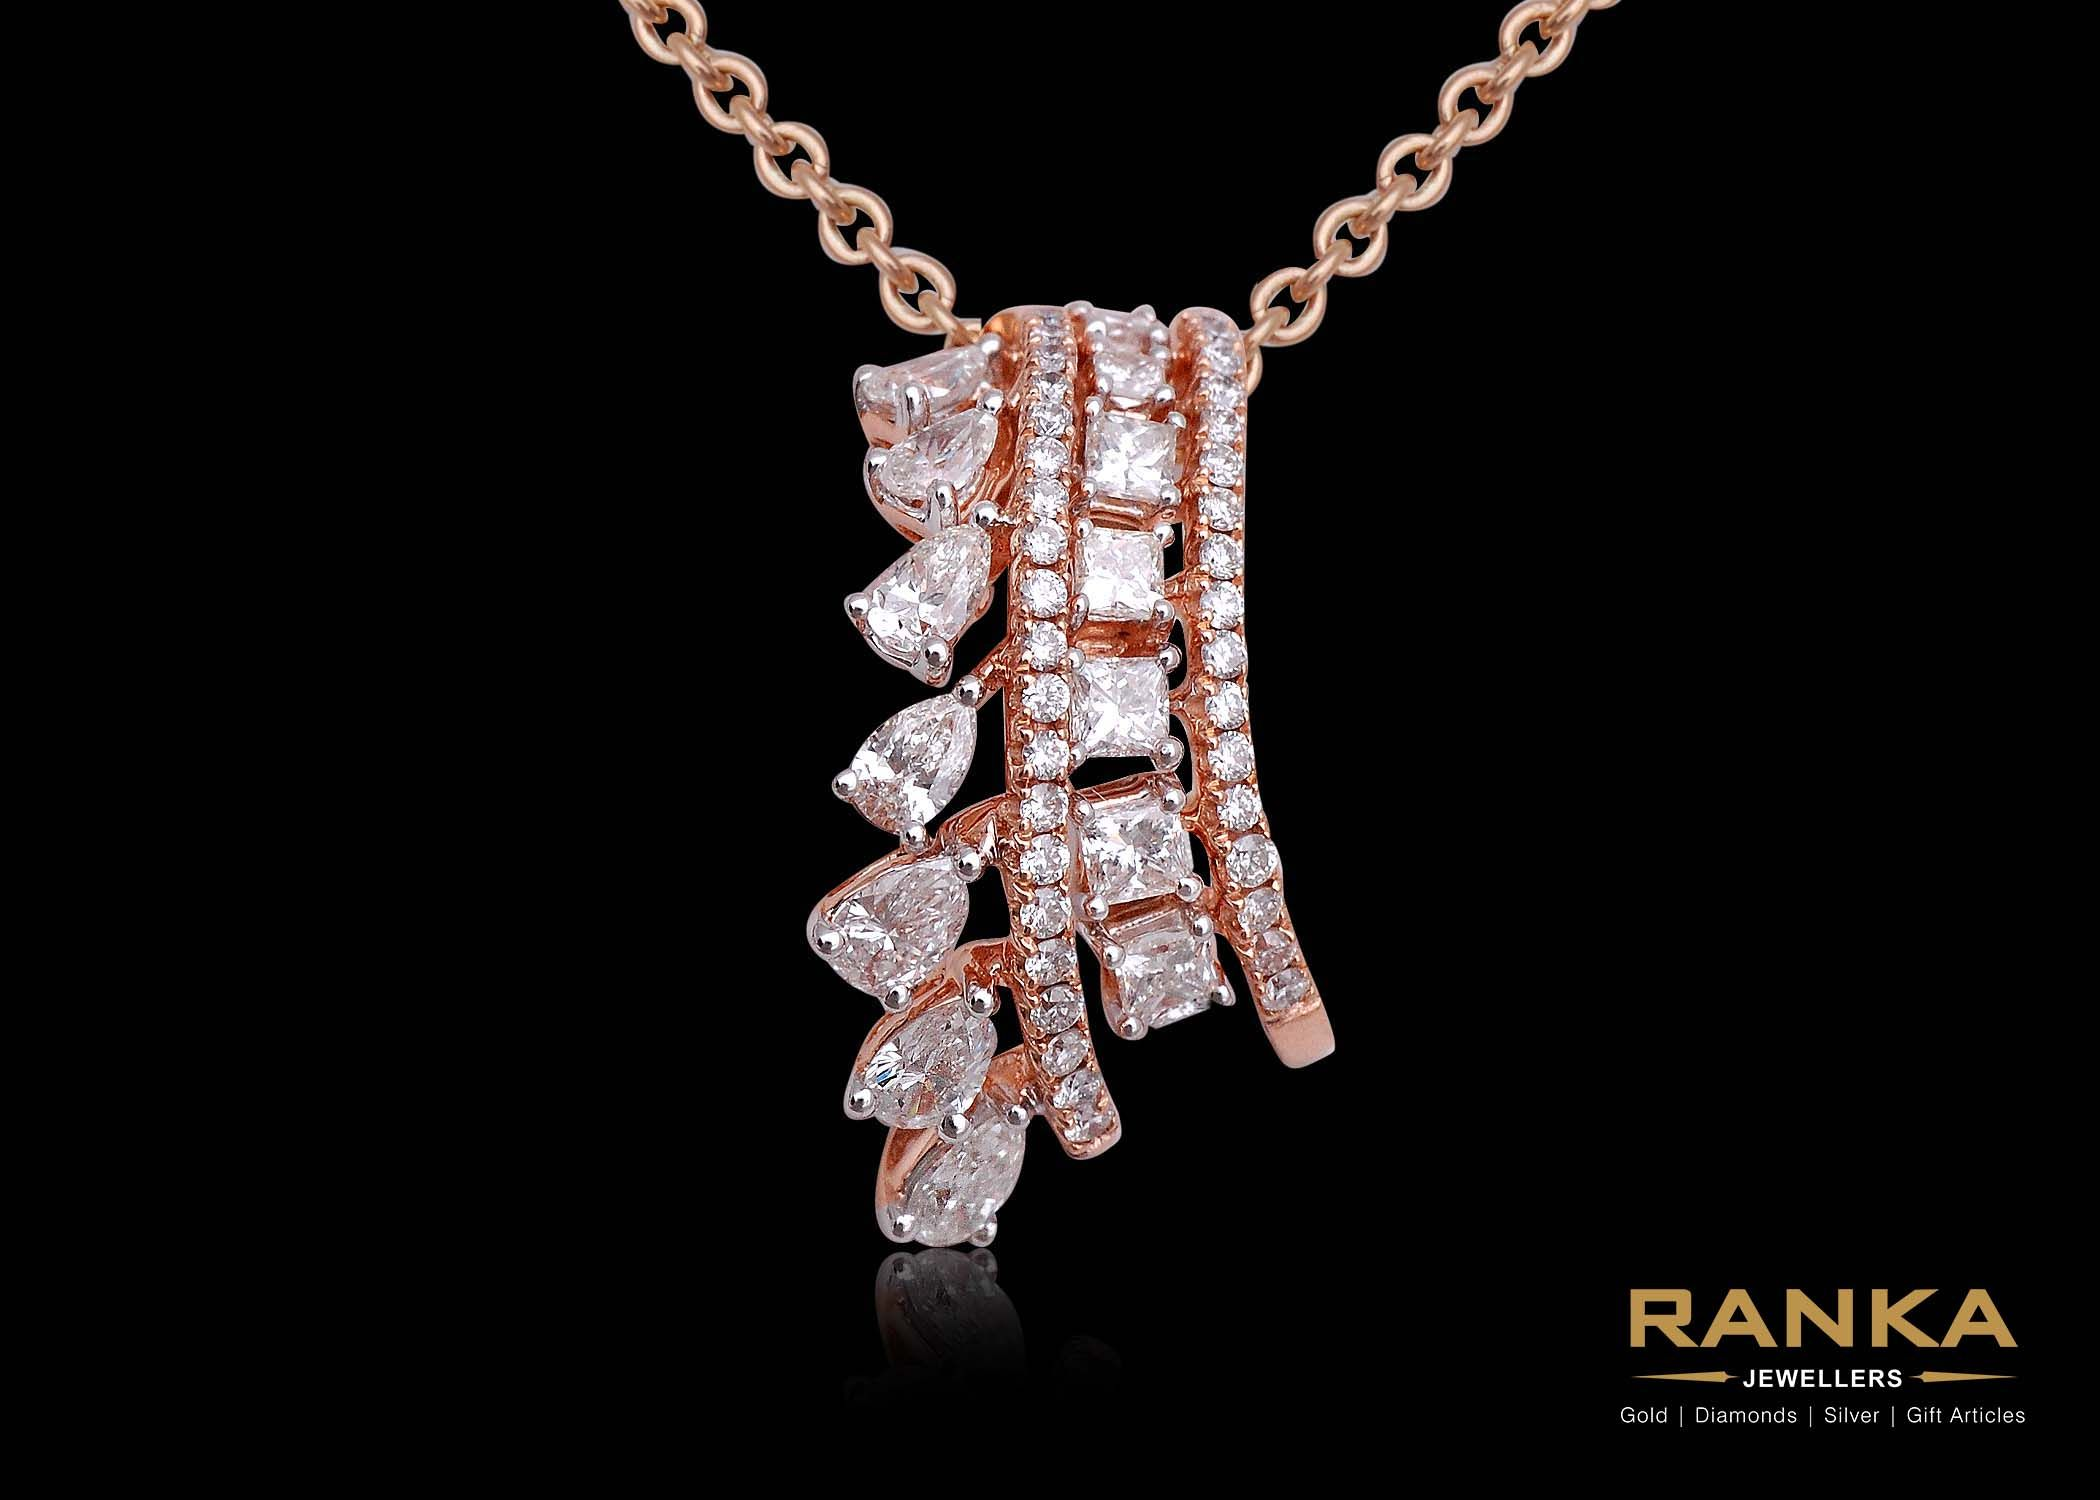 You can find more of these on rankajewellerspune